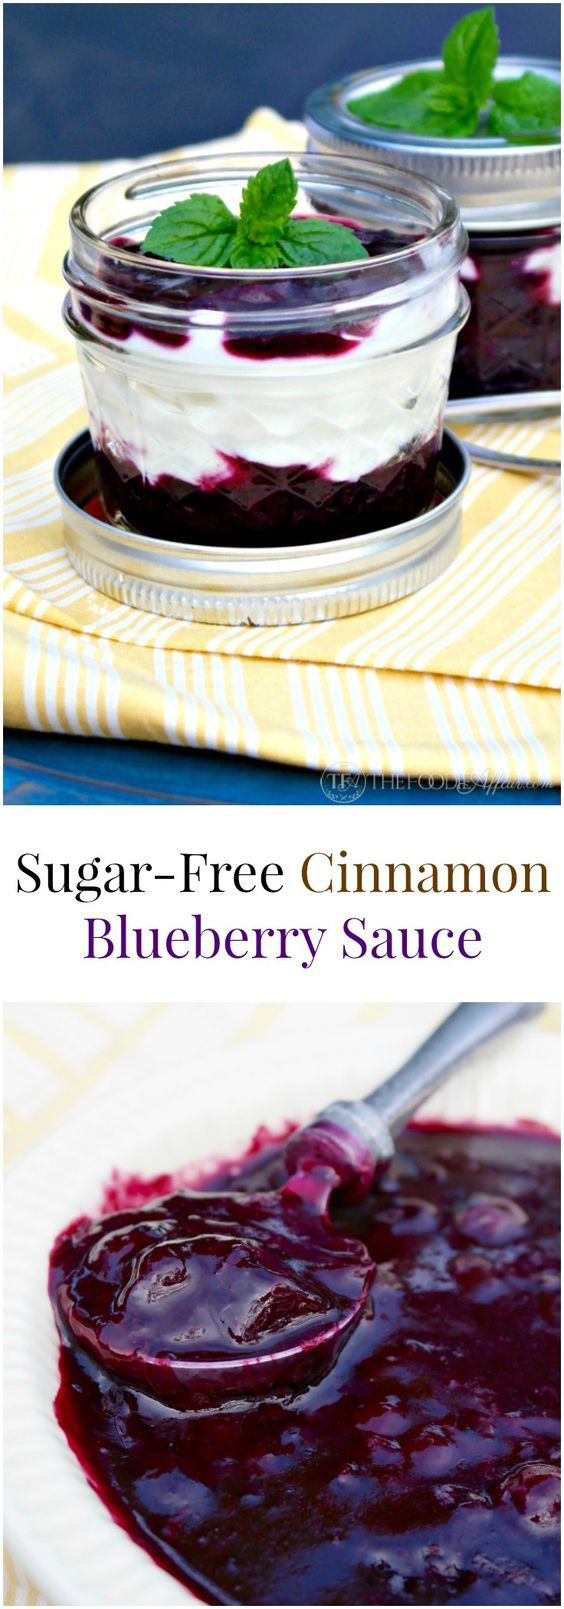 This all purpose cinnamon blueberry sauce is made without sugar! Add to pancakes, waffles, yogurt or use it as a filling for pie!